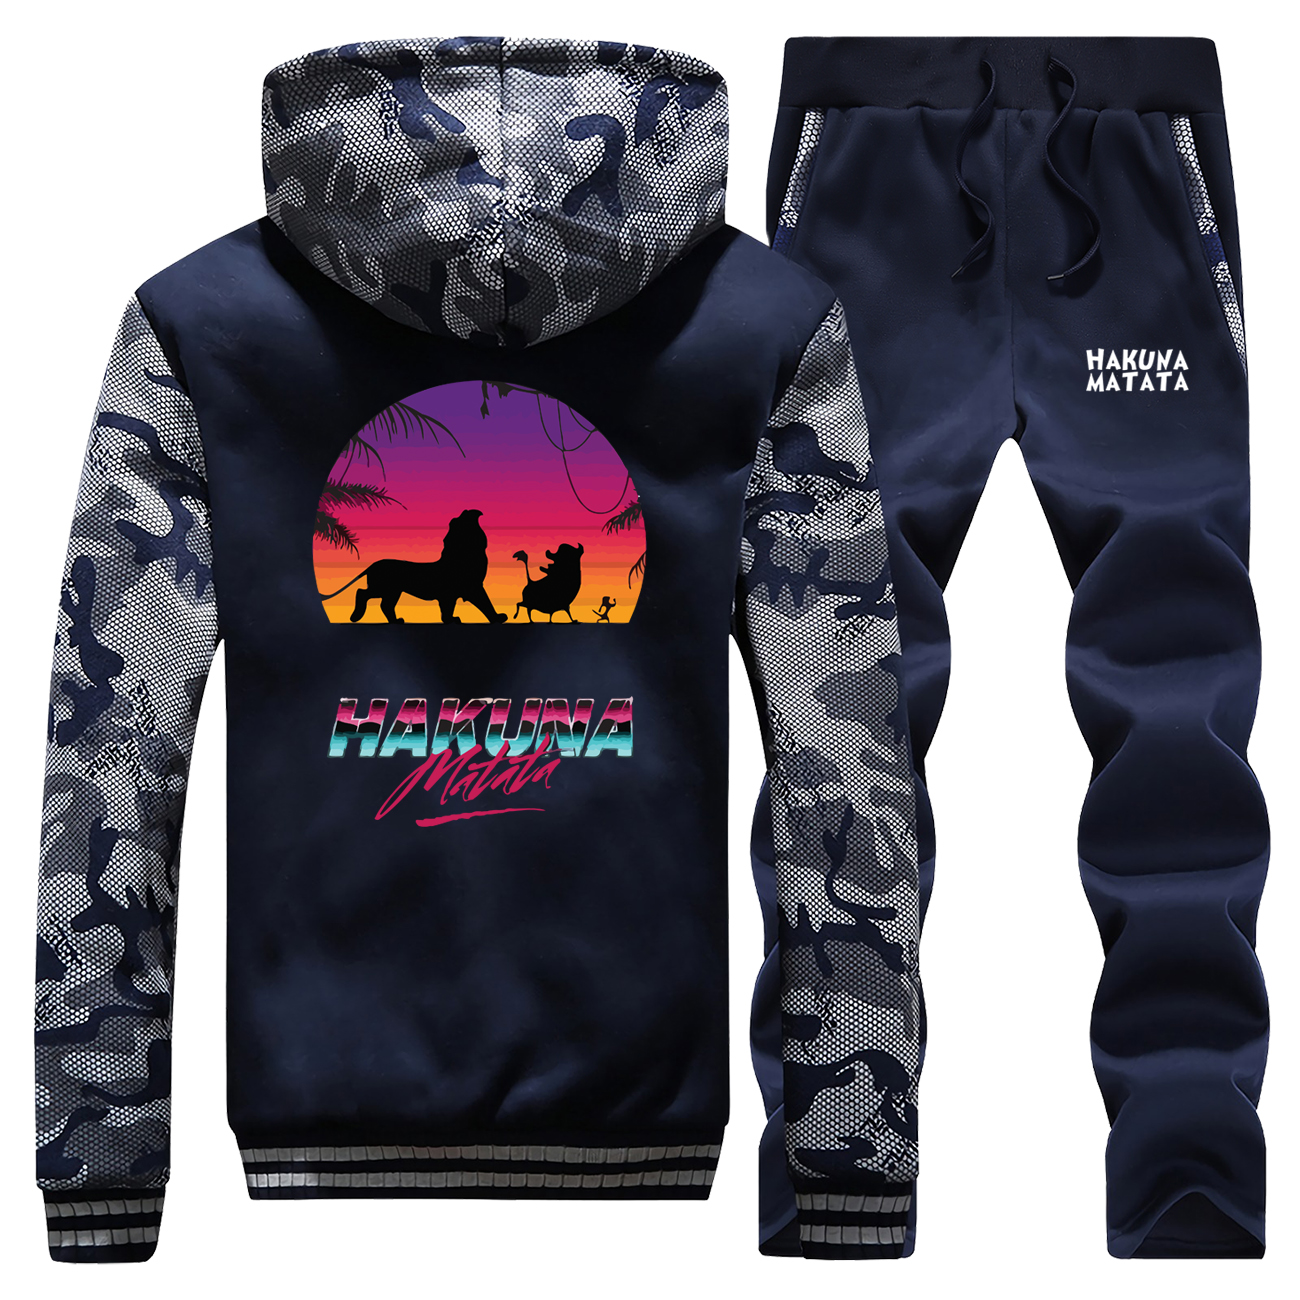 The Lion King Hoodies Pants Set Men Hakuna Matata Tracksuit Coat TMovie Cartoon Winter Thick Jacket Camo Sportswear 2 Piece Sets